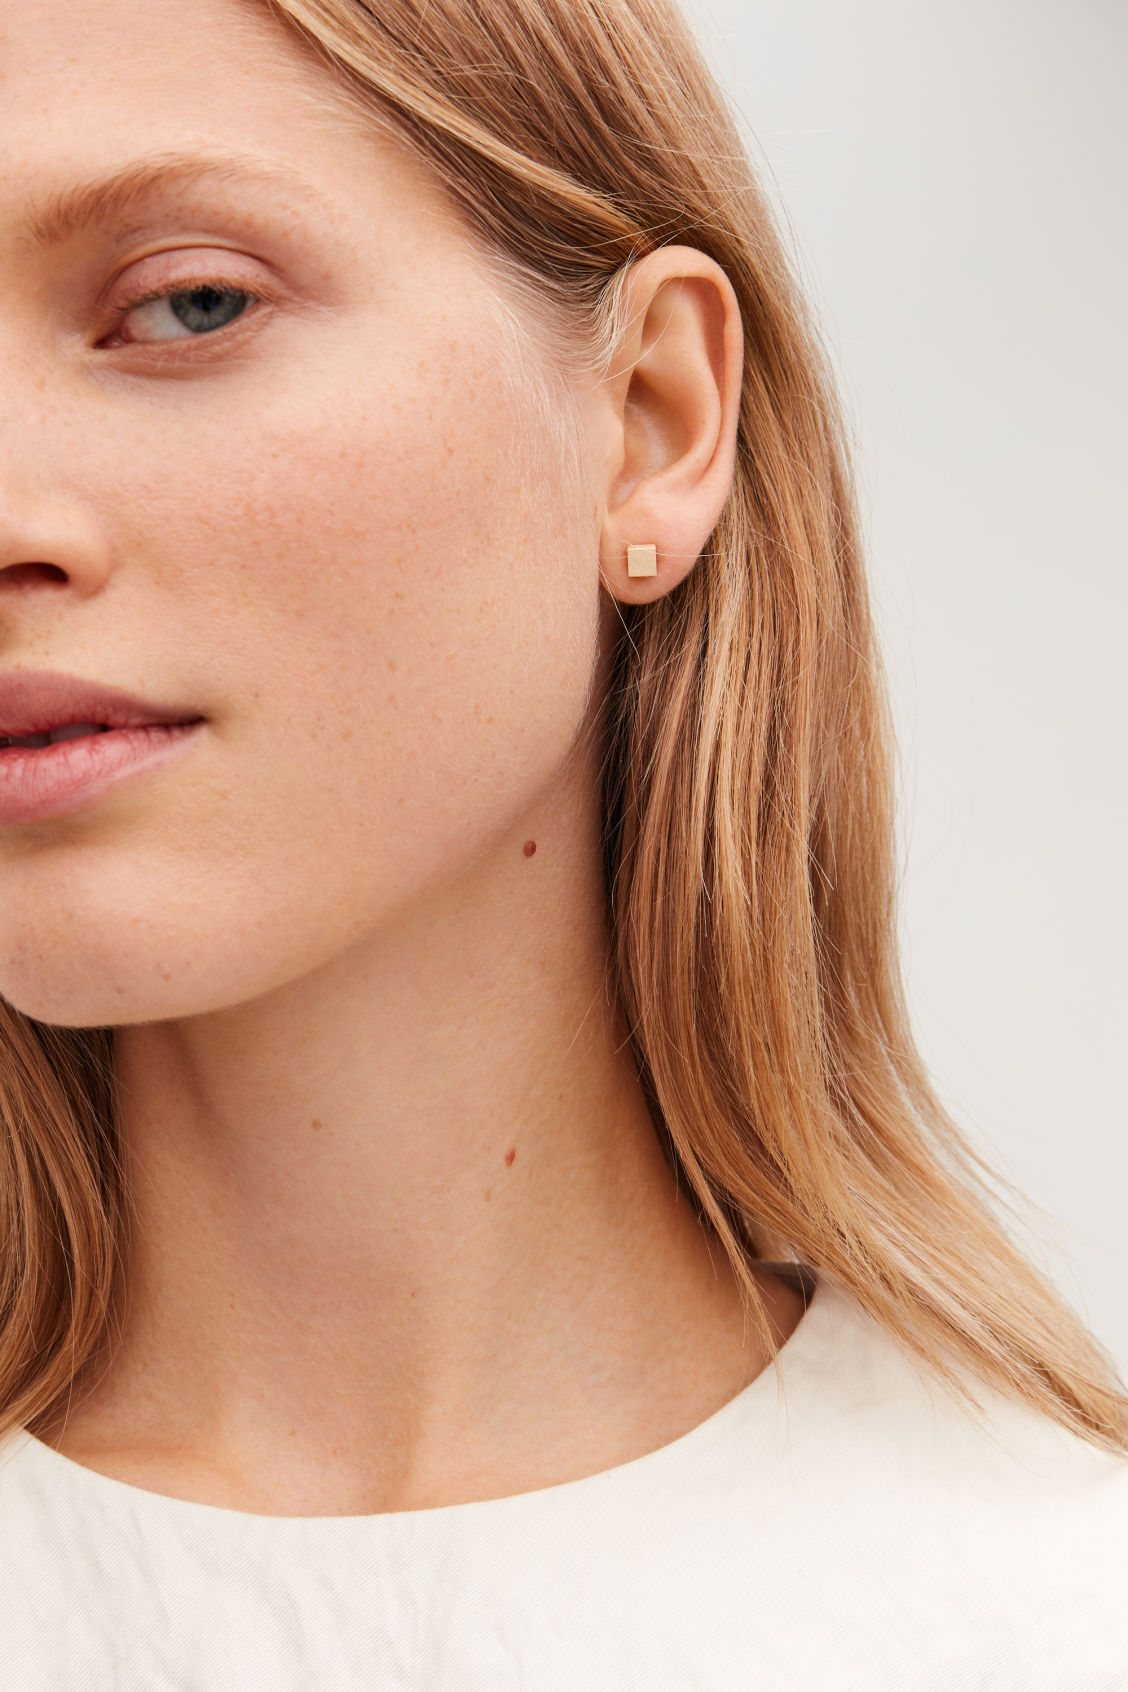 Detailed image of Cos cube stud earrings in gold